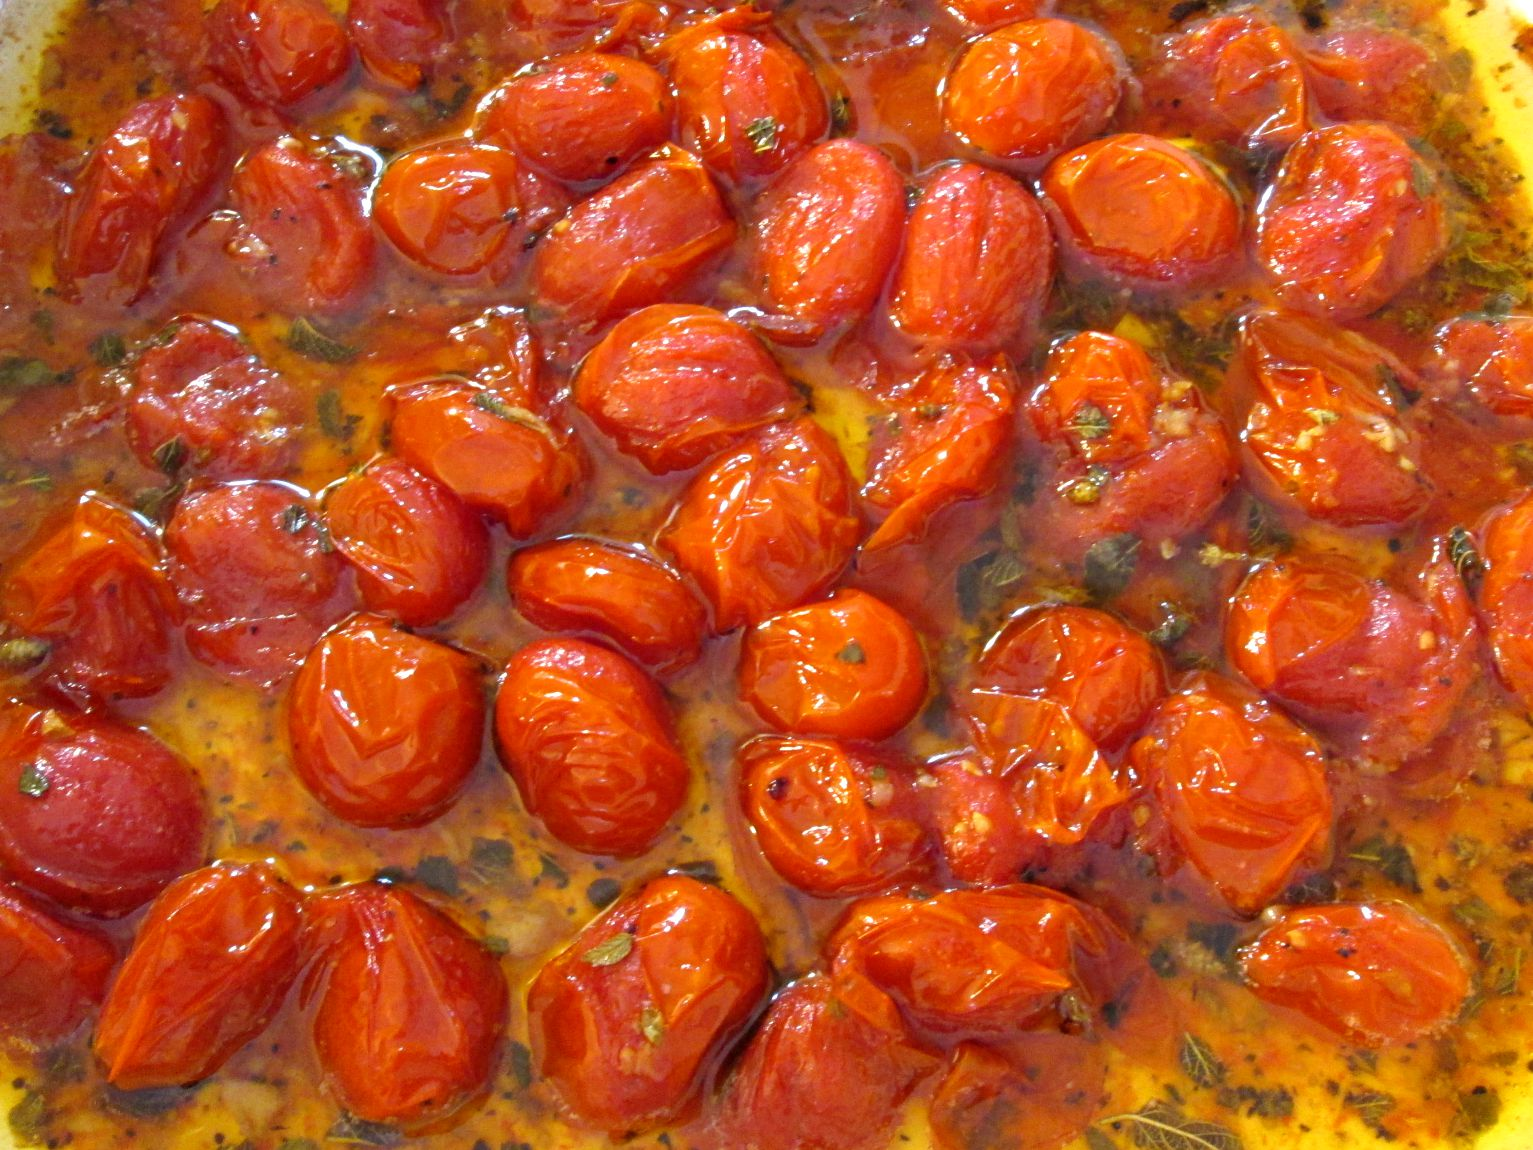 Roasted Tomatoes – Marinated and Roasted Cherry Tomatoes Recipe